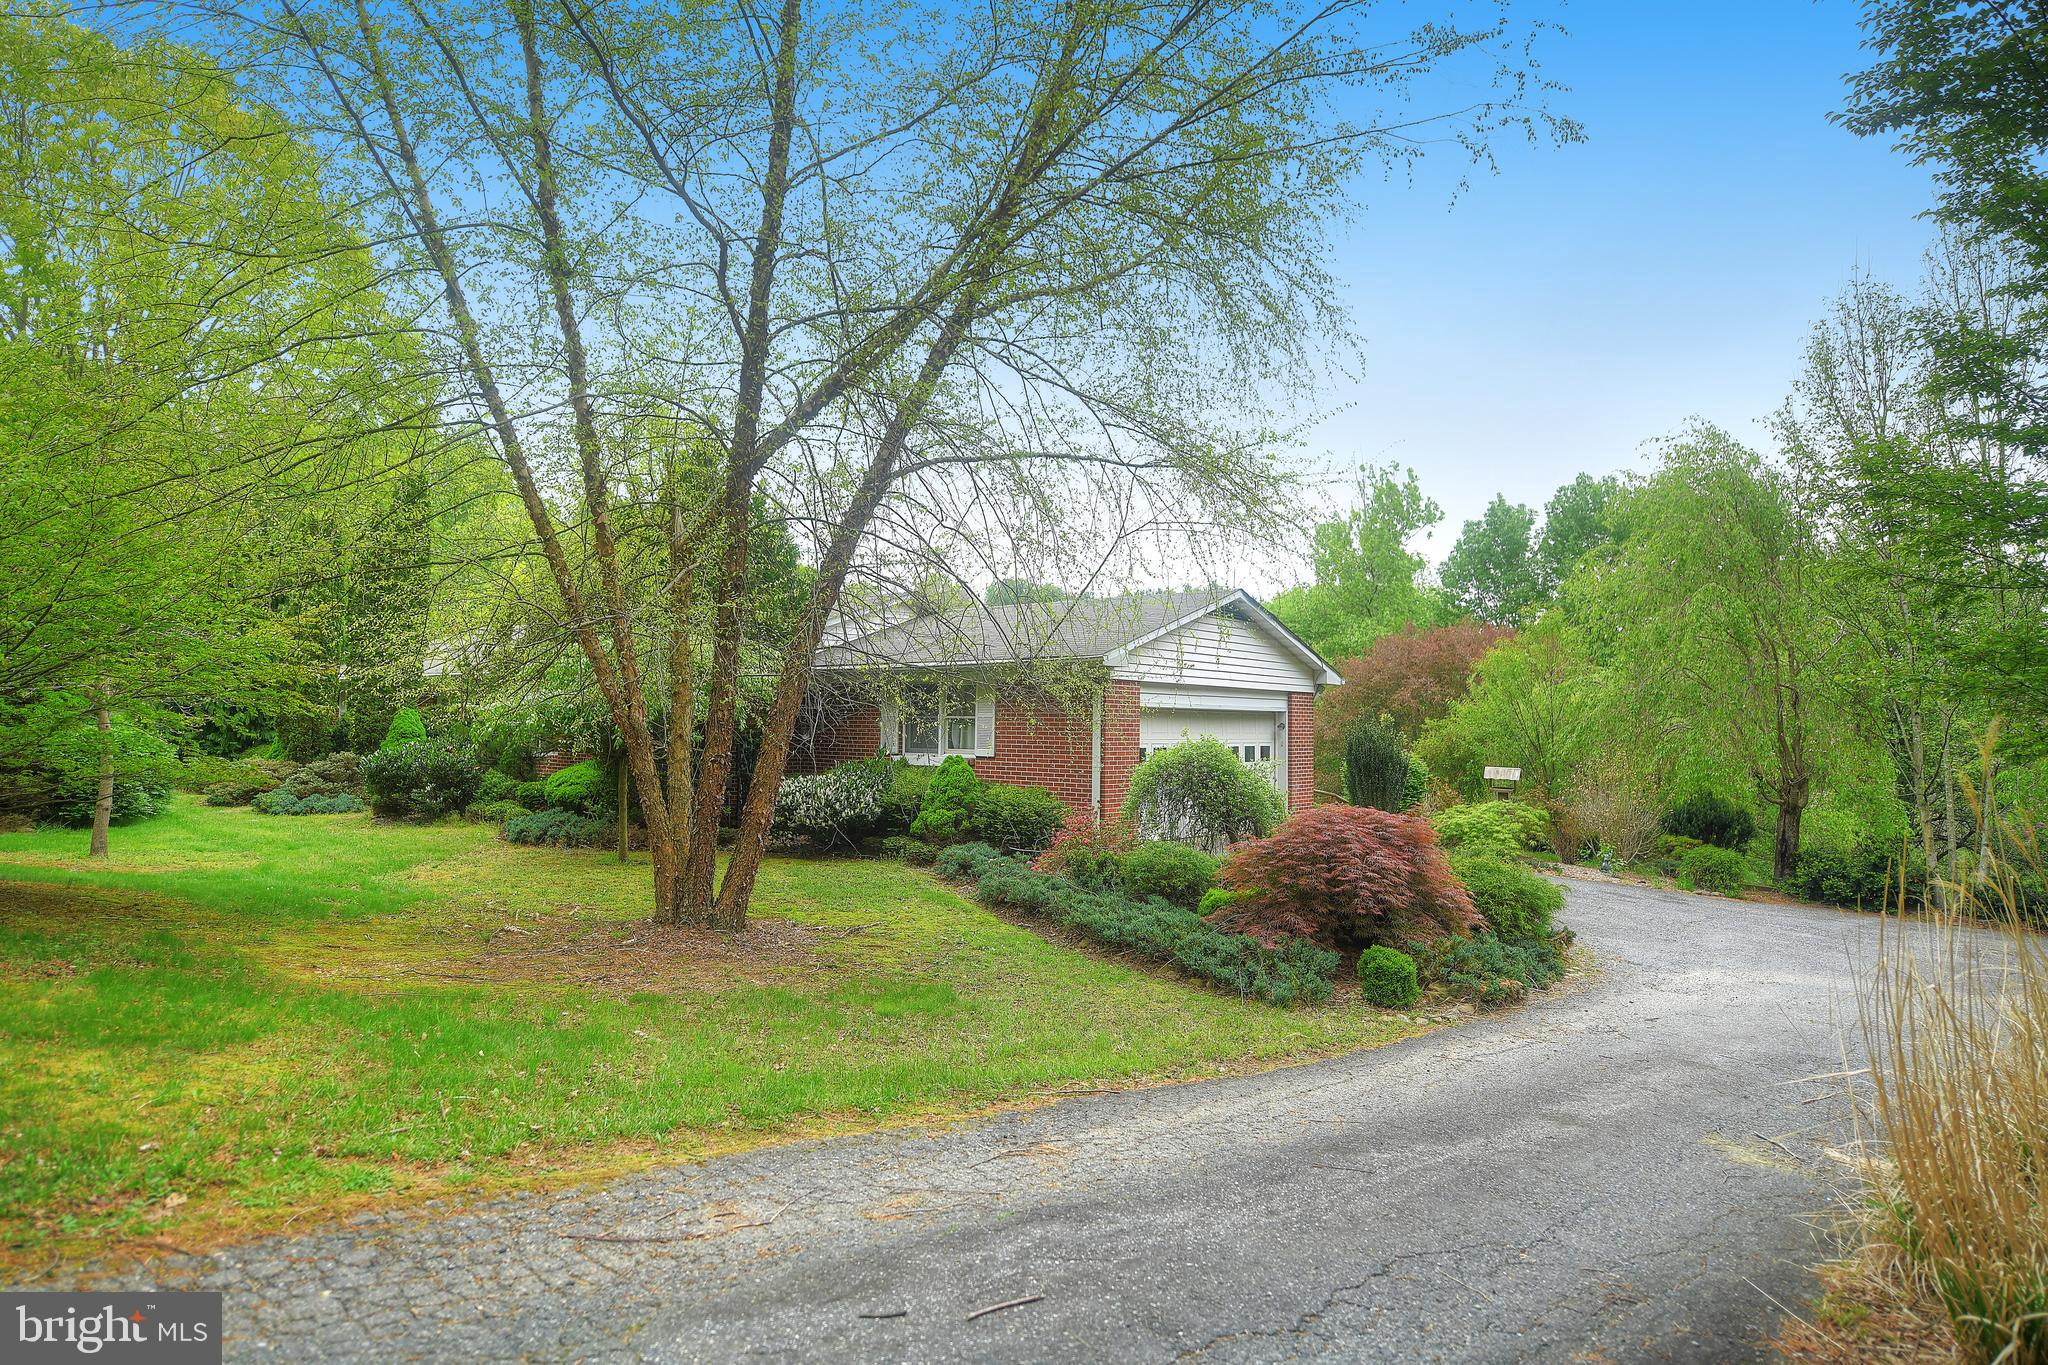 4521 ROSEMARY WAY, STREET, MD 21154